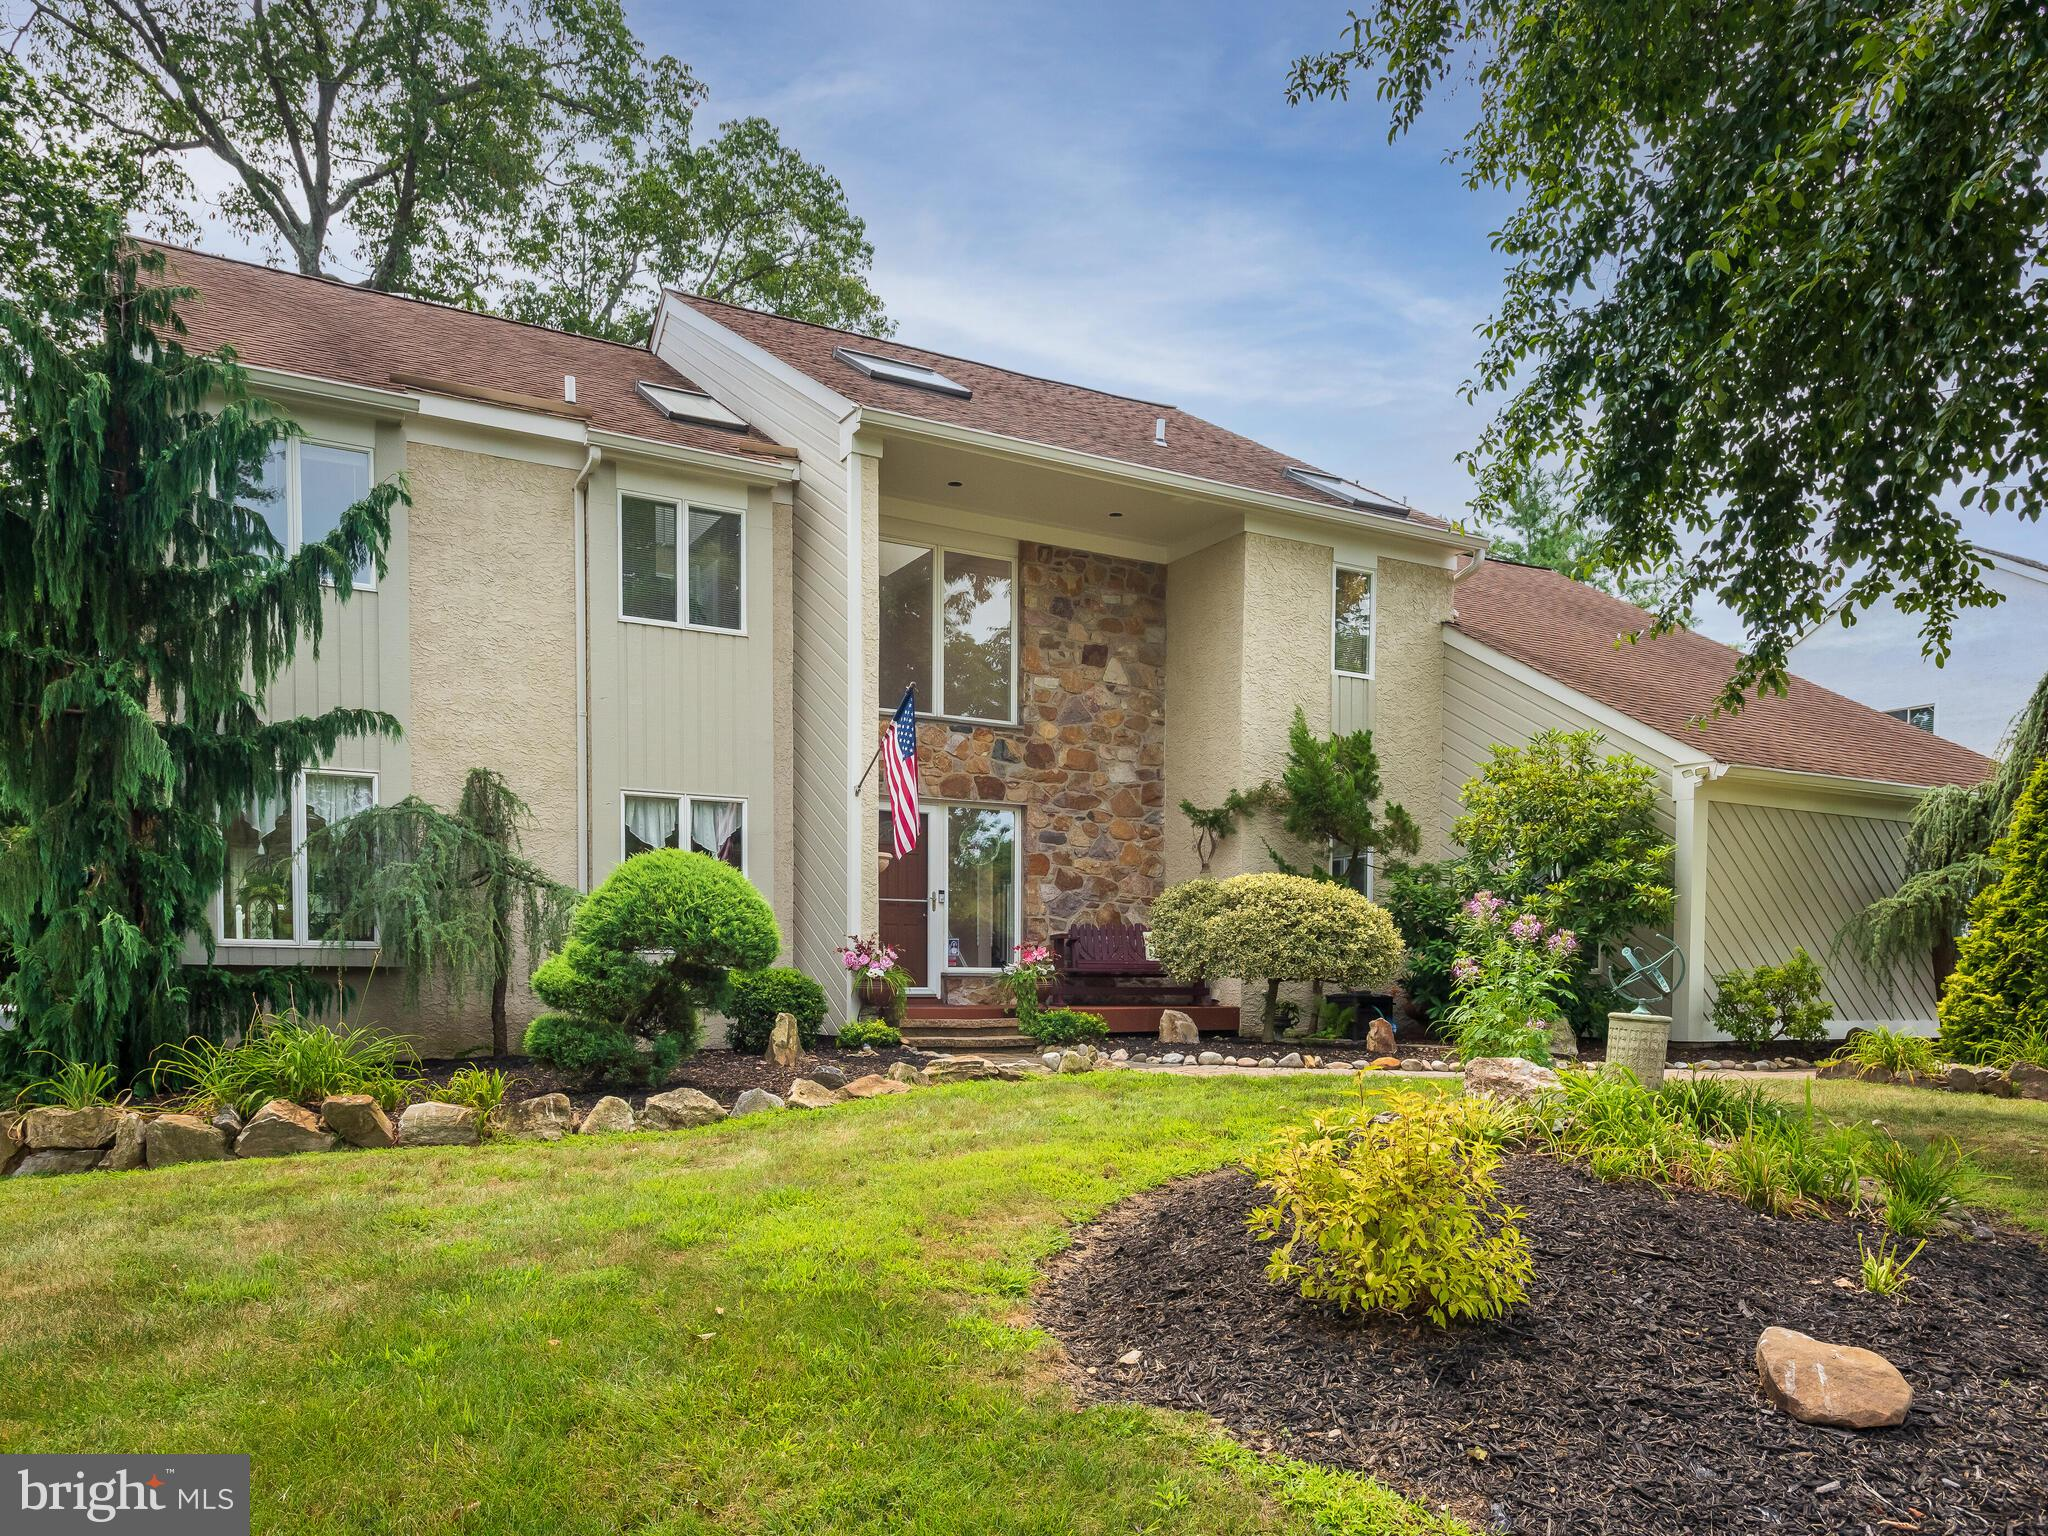 When amenities, condition and location are desired - look no further - this home has it all.  Curb appeal is optimal in this beautiful 4 bedroom 2.1 bath home in the West Chester School District.  The owners have lovingly maintained this amazing  home that boasts a bright and sunny welcoming foyer with hardwood flooring.  The formal living room and large dining room enjoy lots of light, beautiful hardwood flooring and provide the perfect space for entertaining.  The eat-in  kitchen has been updated and features plenty of cabinets, granite countertops, stainless appliances, under-mount lighting and sliding doors which access  the deck and the hot tub. The family room creates the perfect space for family get togethers and movie night and has as its focal point a beautiful stone fireplace and opens to the sunroom adding additional space to enjoy the many amenities found in the backyard.  Speaking of the backyard - wow - its the place to be in the summer.  The swimming pool with new liner is flanked by beautiful landscaping and hardscaping and ready for the hot days of August.   When it's time to close the pool enjoy the benefits of  the hot tub all year long. The second floor is home to a large master suite featuring an updated bath with soaking tub, walk-in shower, double vanity and an amazing close to shopping, transportation, commuter rail lines and easy access to major highways - location is prime!  Come make this amazing house the place you call home!! set.